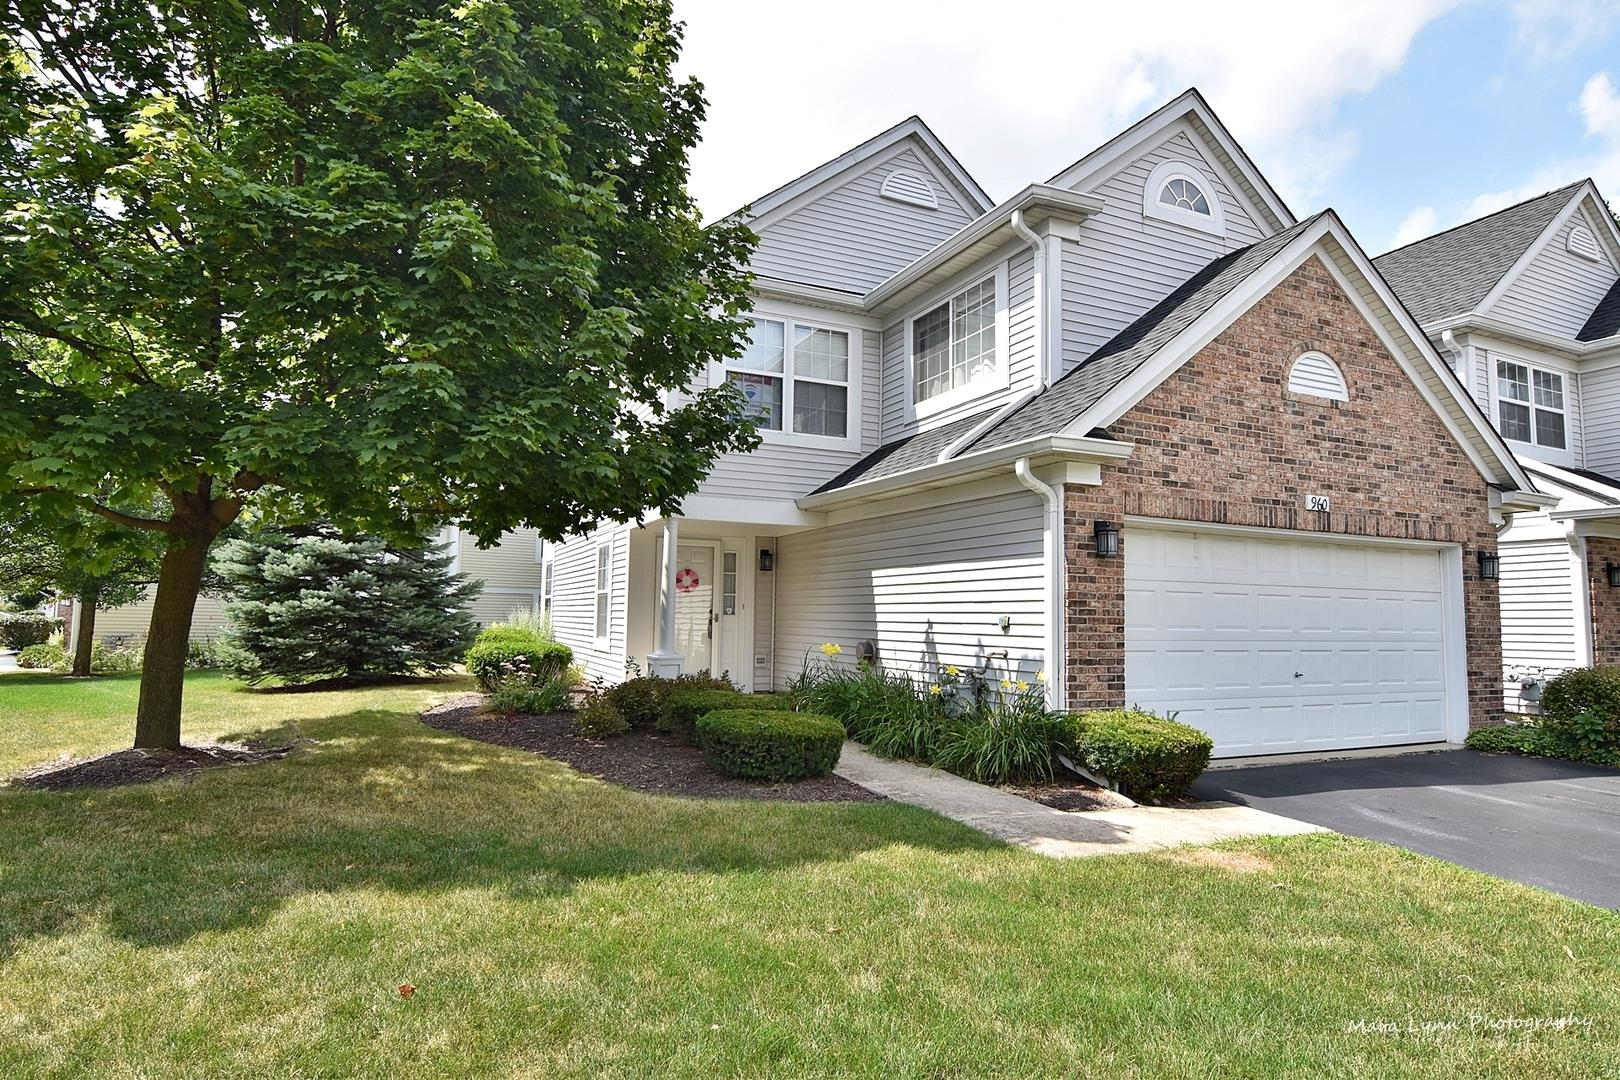 960 Ainsley Drive #960, West Chicago, IL 60185 - #: 10467033